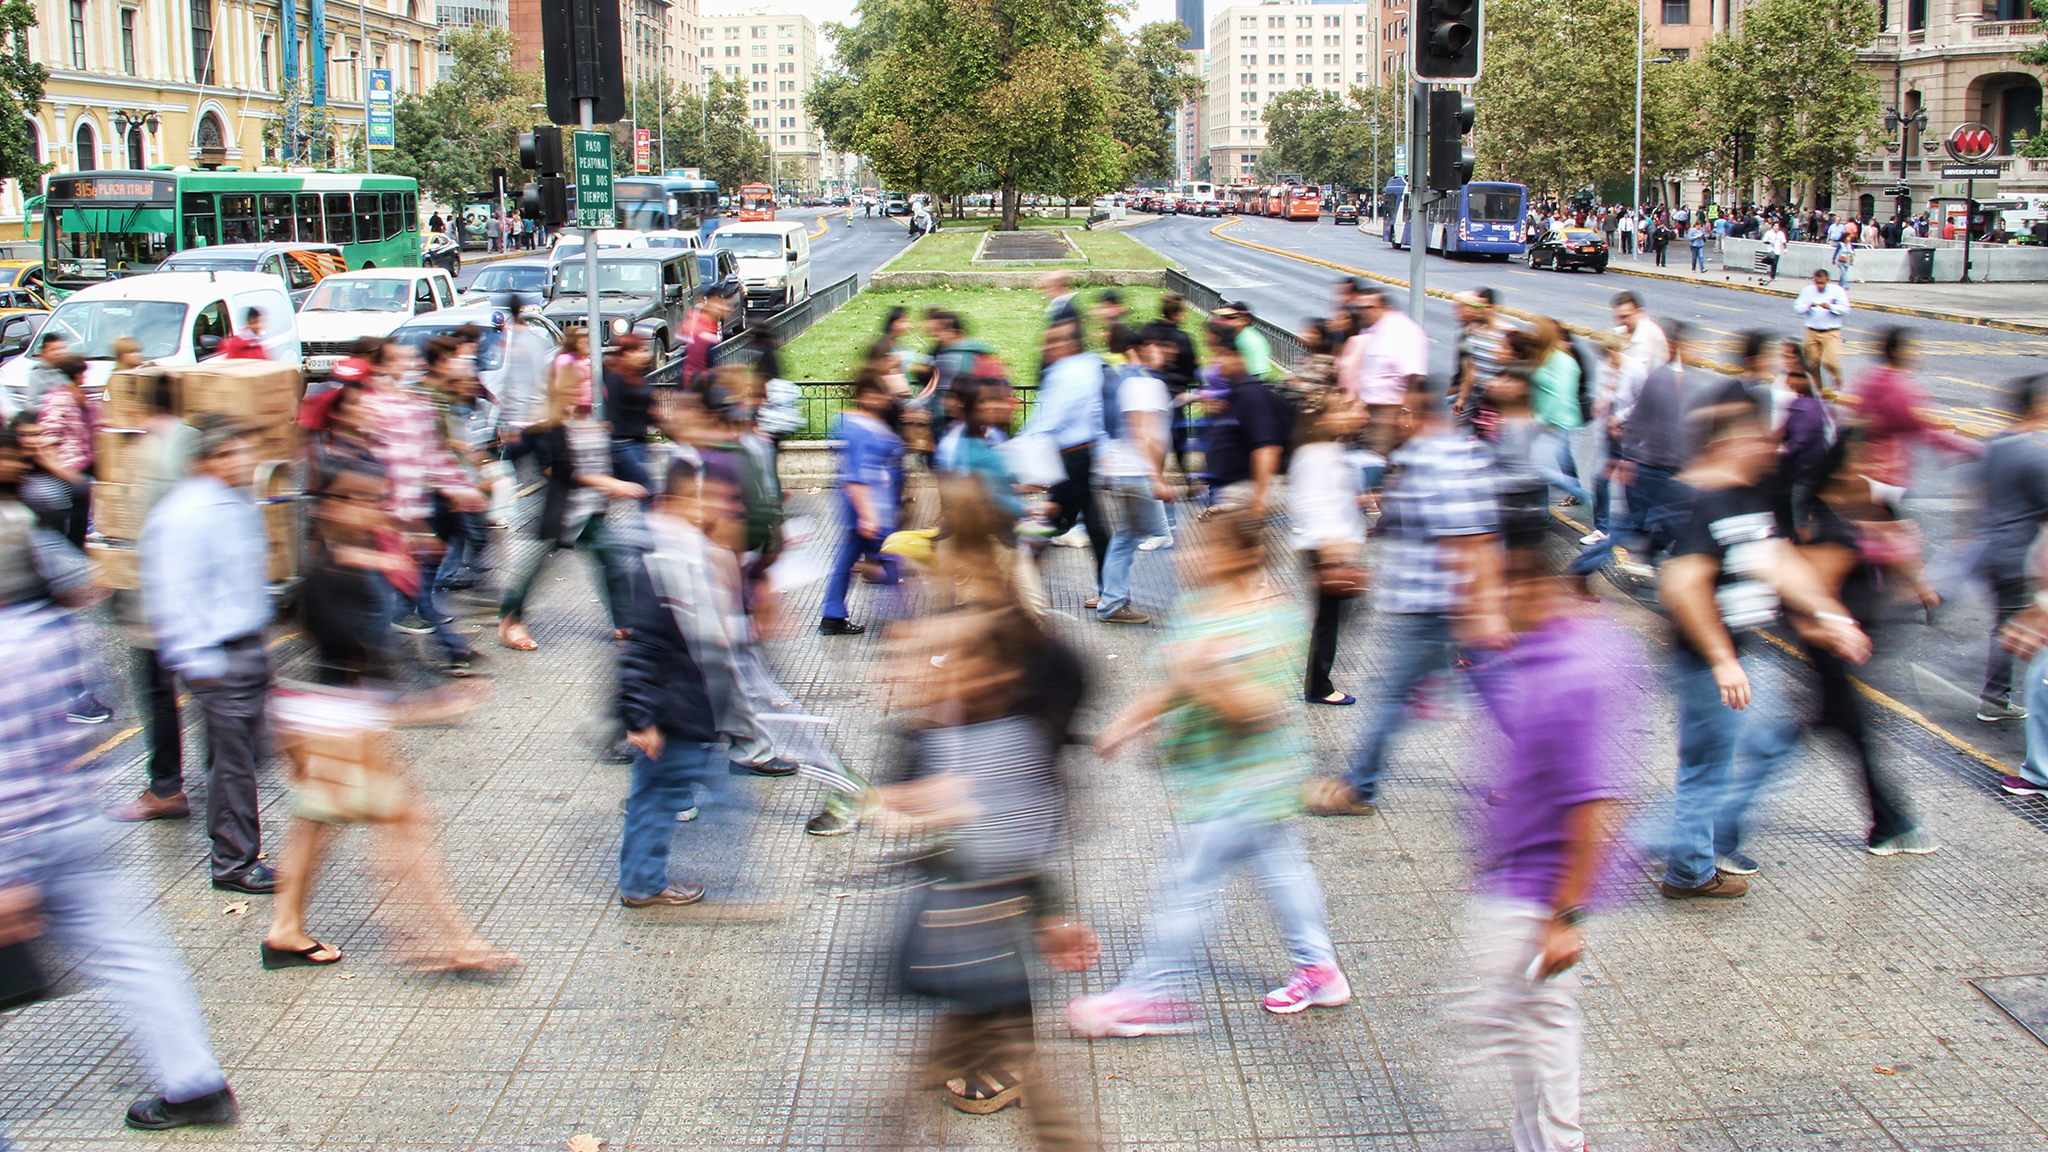 Motion-blur image of people walking both ways over a walkway during the day.